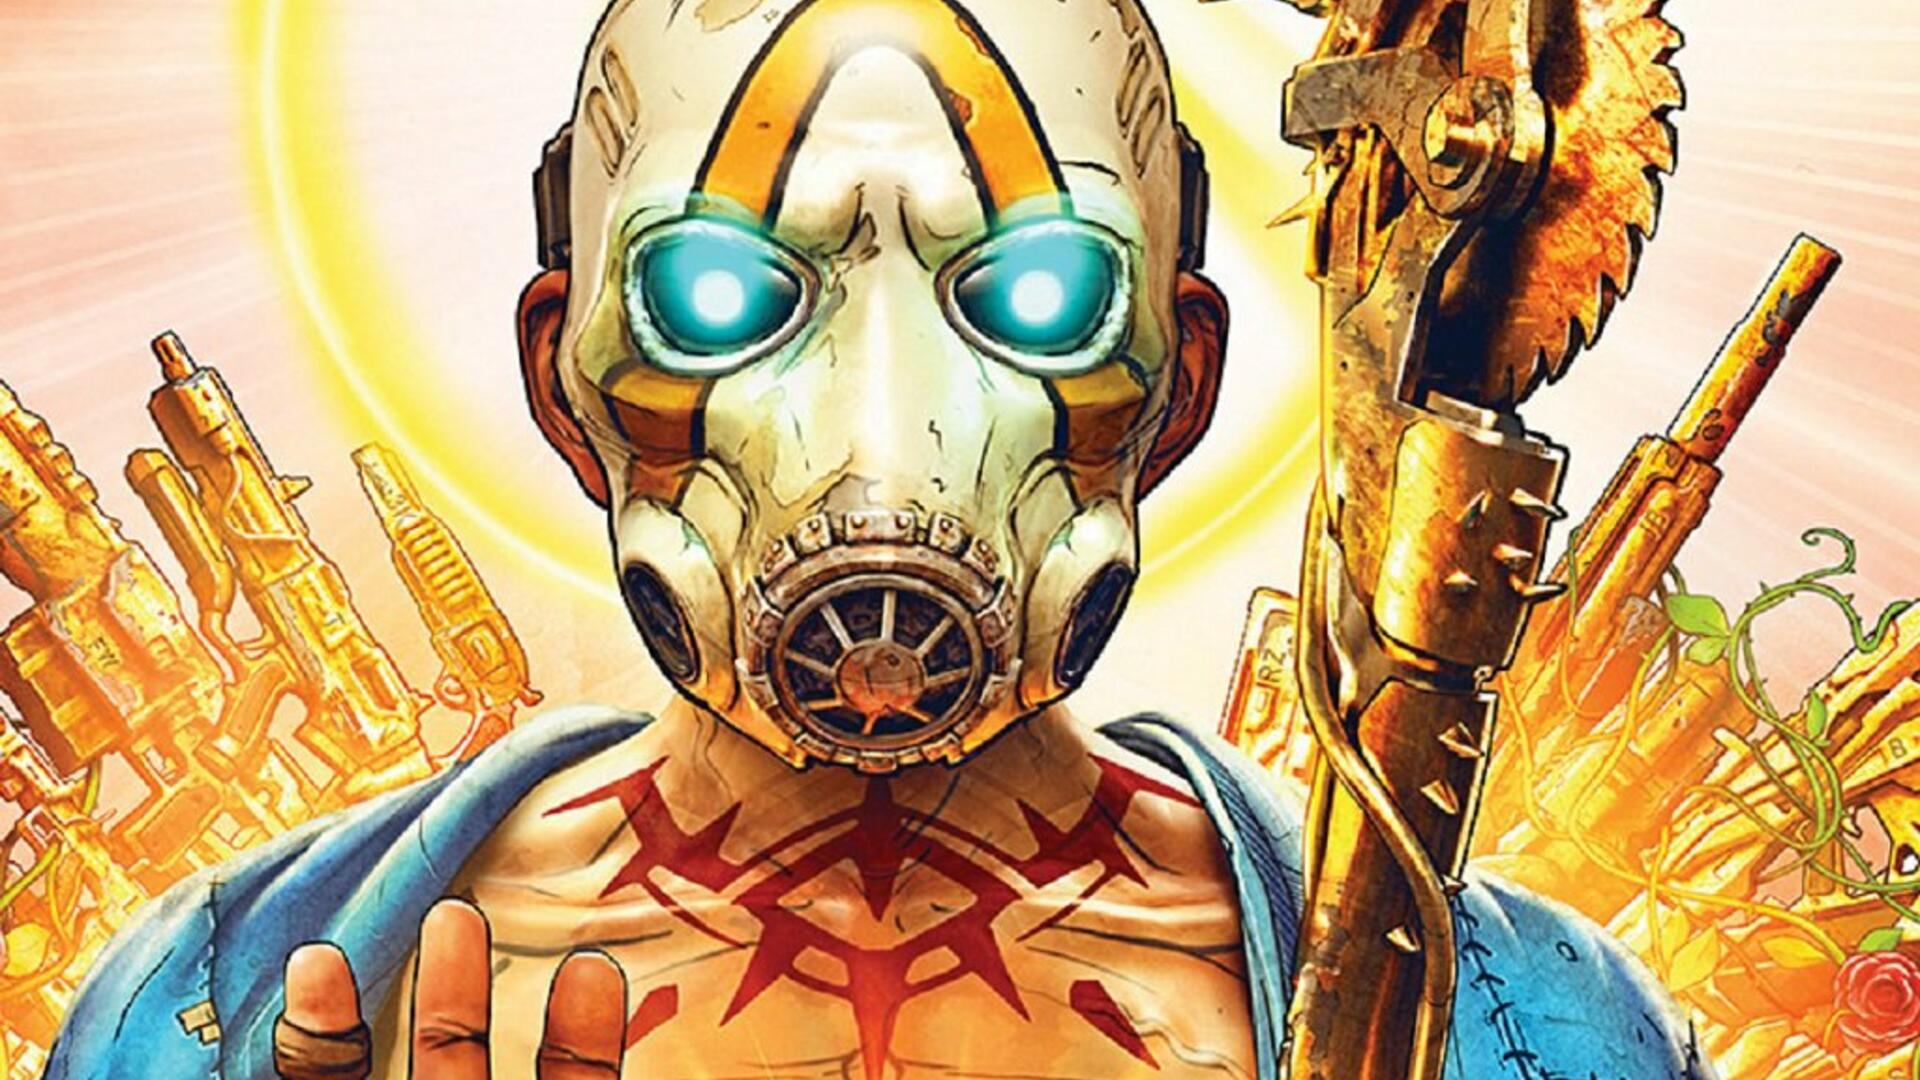 Watch Today's Borderlands 3 Gameplay Here and Be Ready for Lots of Claptrap